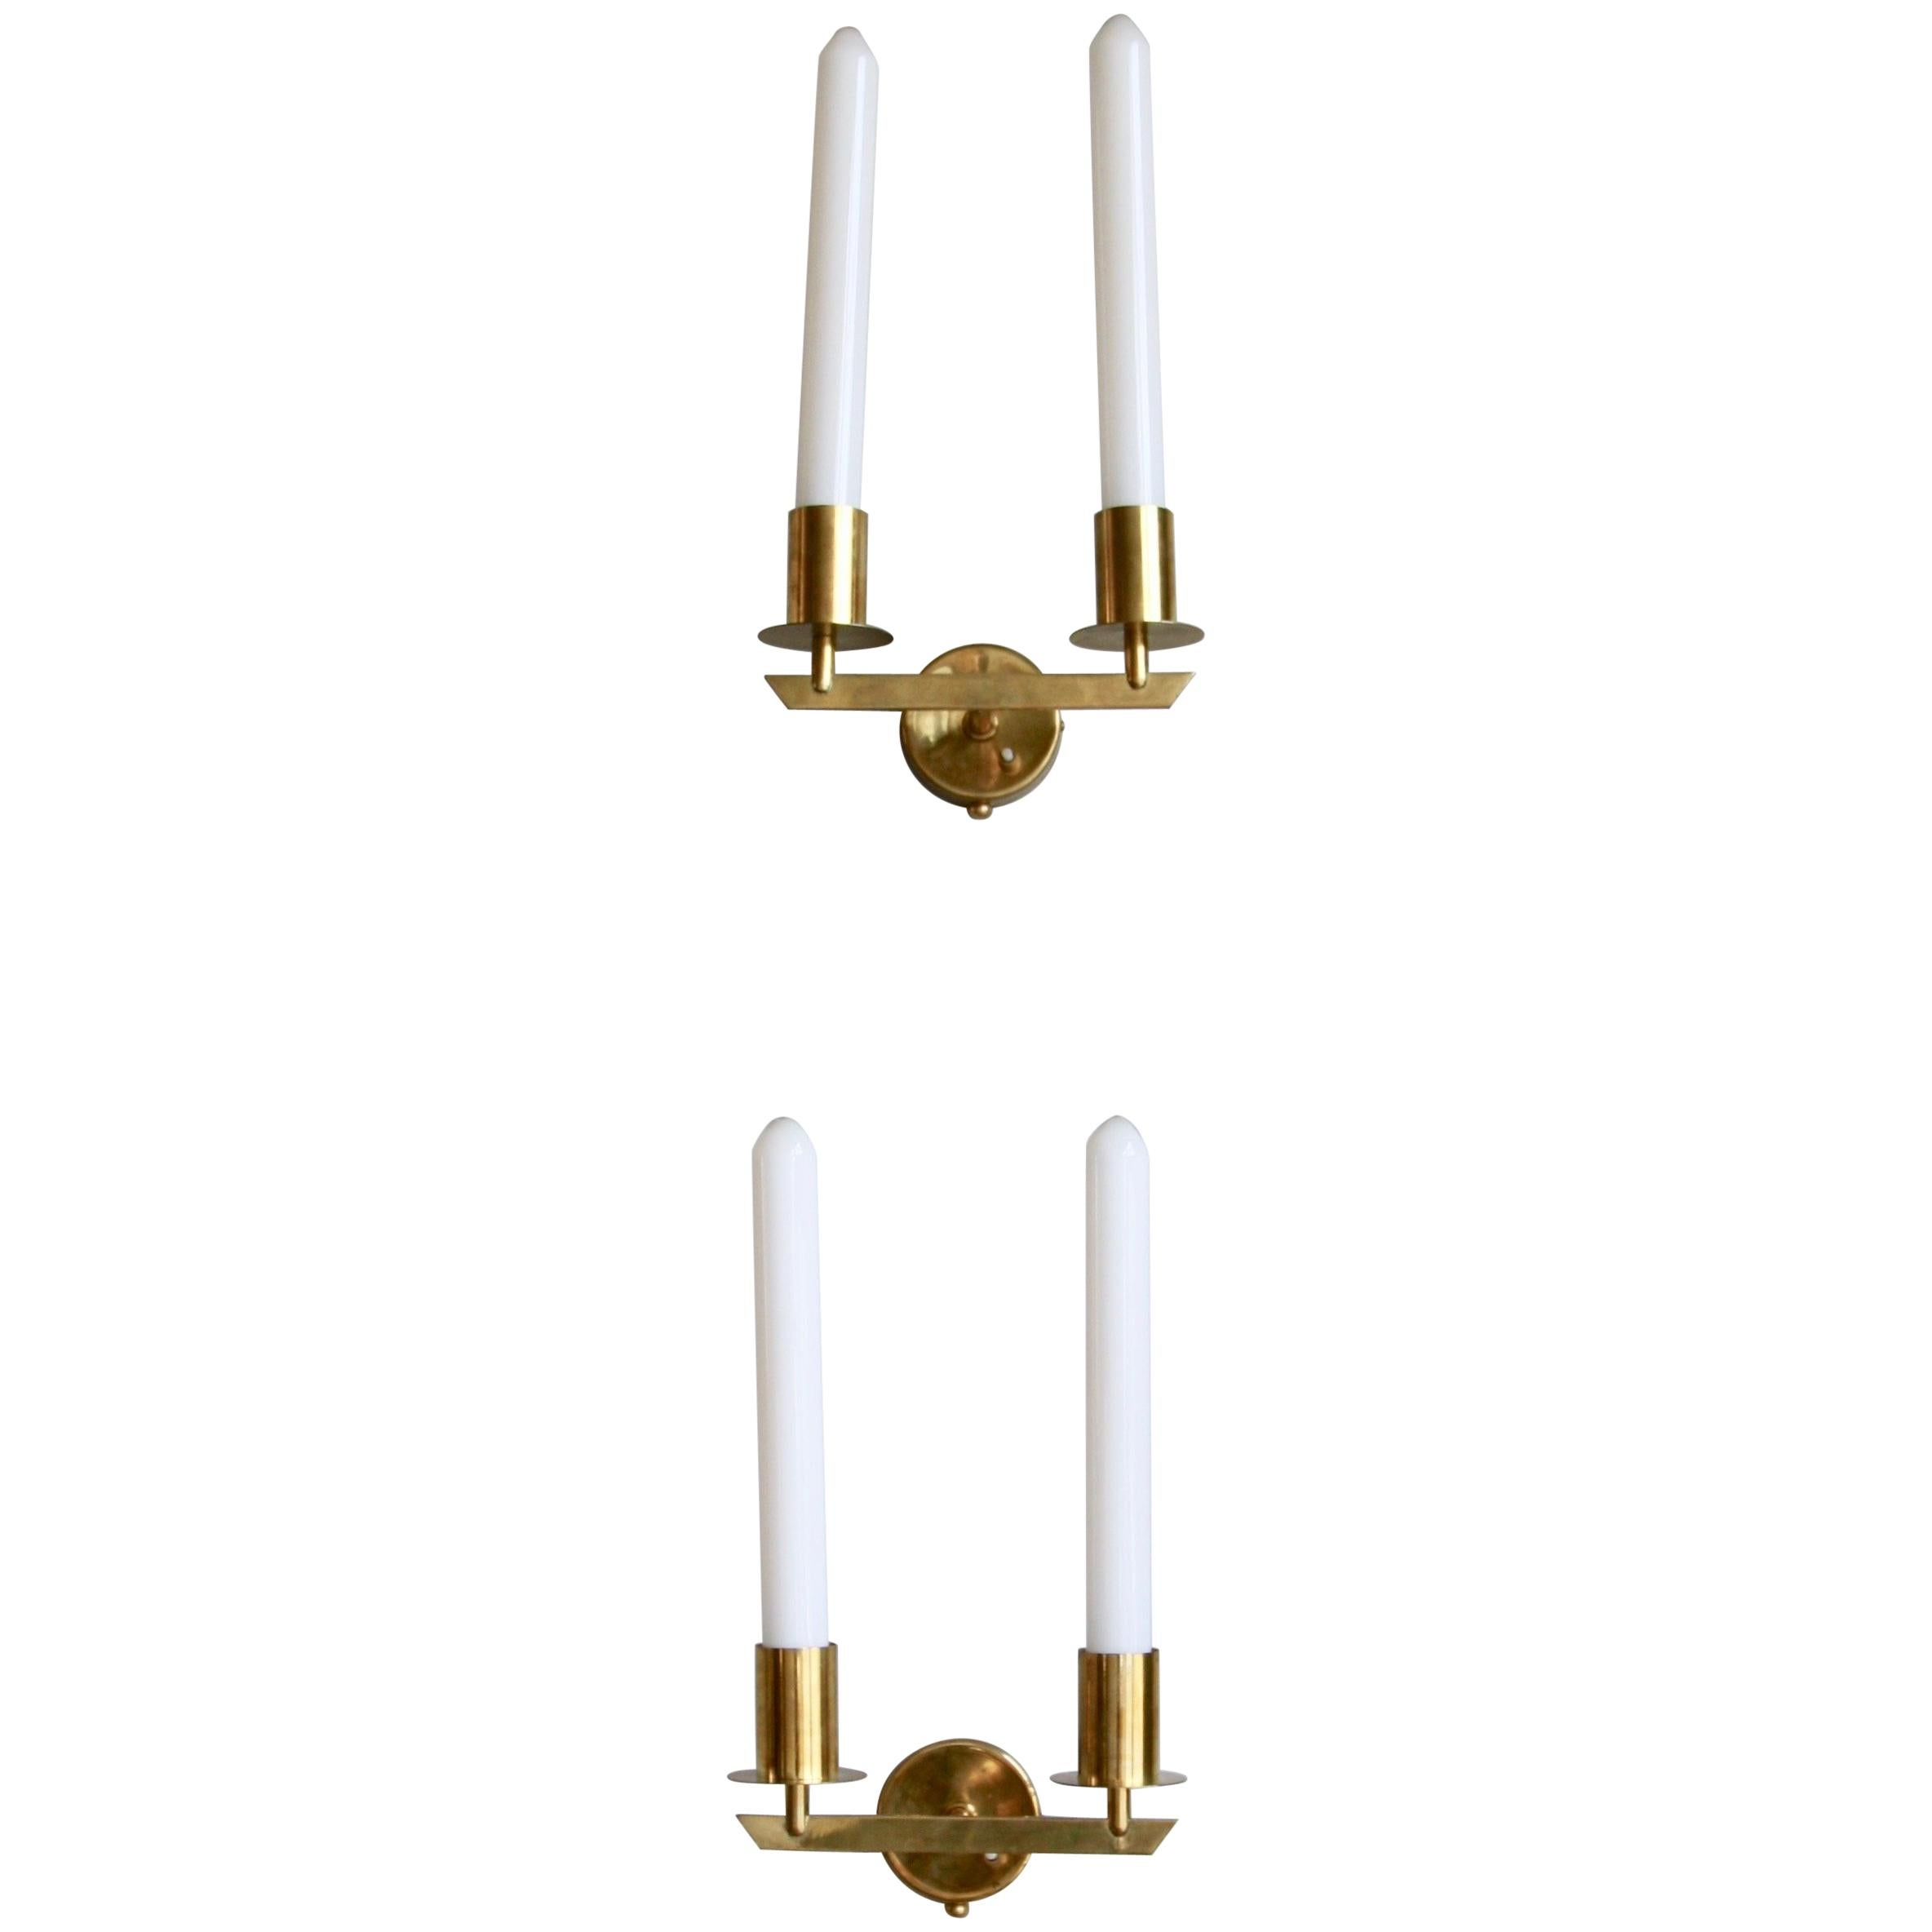 Pair of Wall Sconces in Brass Designed and Made by Itsu Oy, Finland, circa 1950